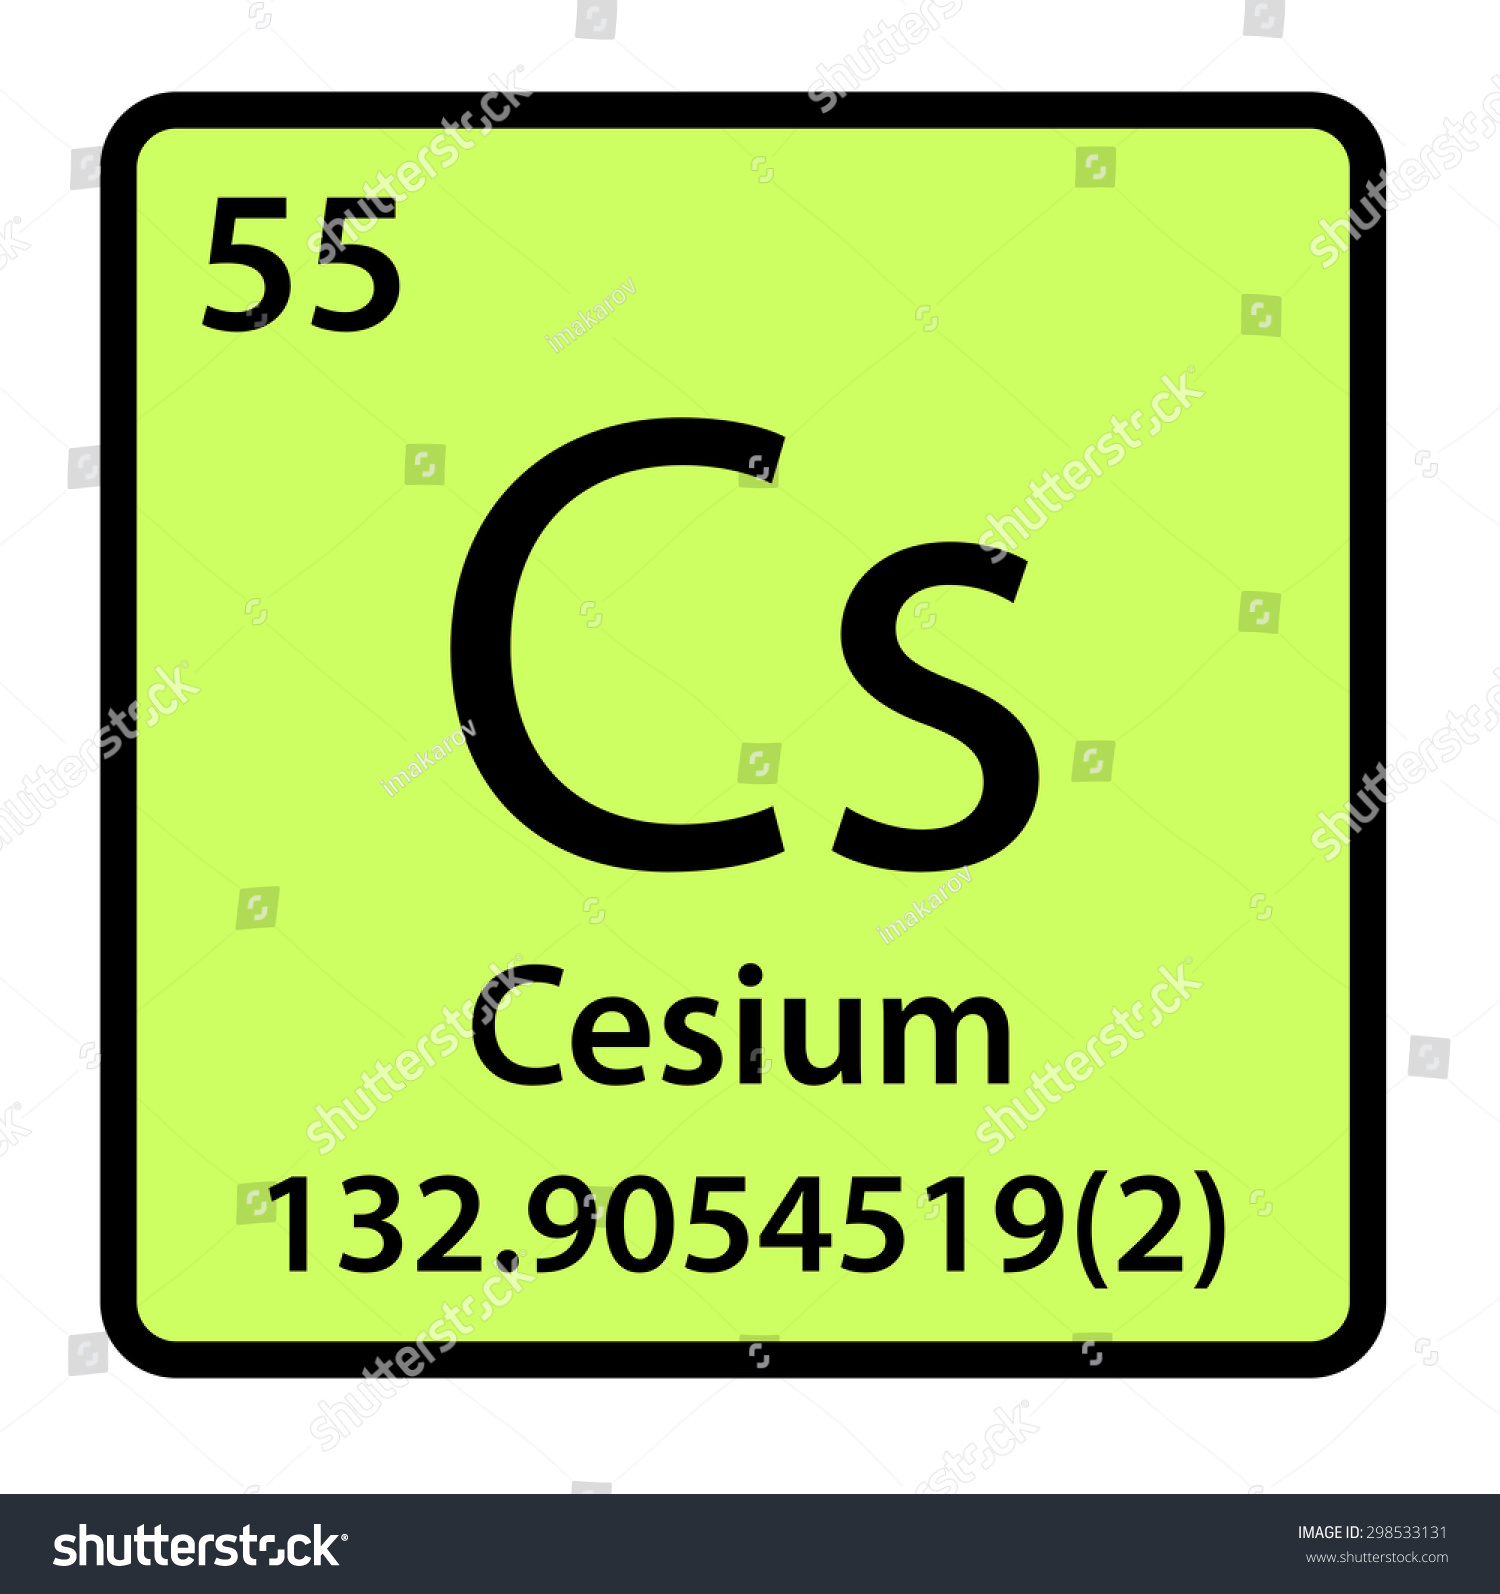 Element cesium periodic table stock illustration 298533131 element cesium of the periodic table gamestrikefo Image collections